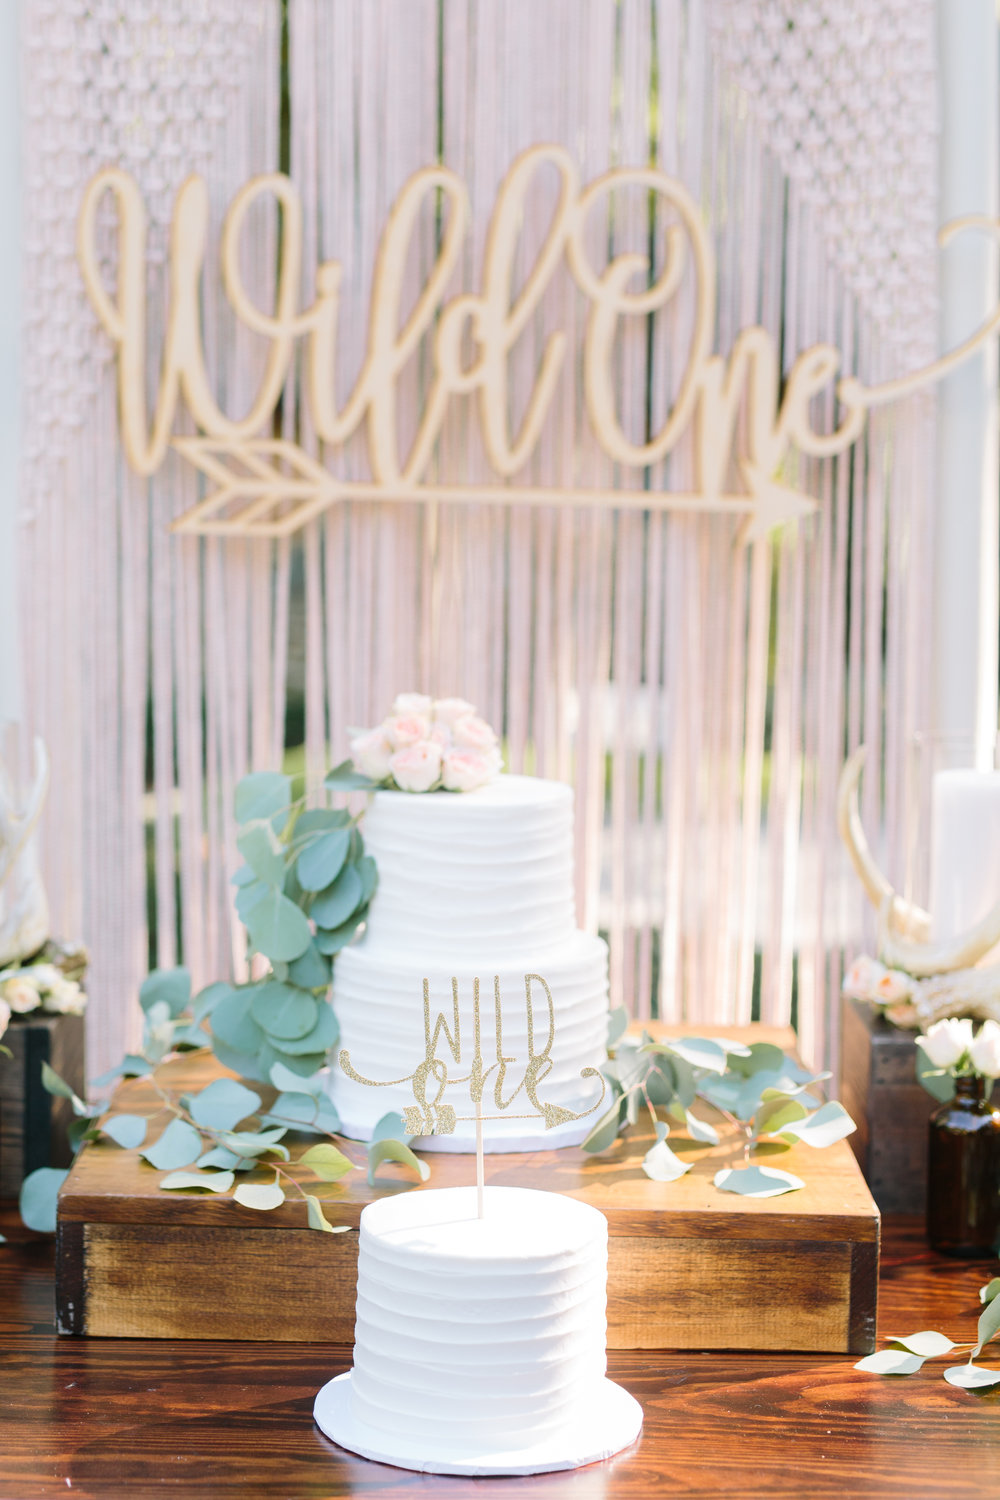 Wild One Boho First Birthday Sweetwood Creative Co